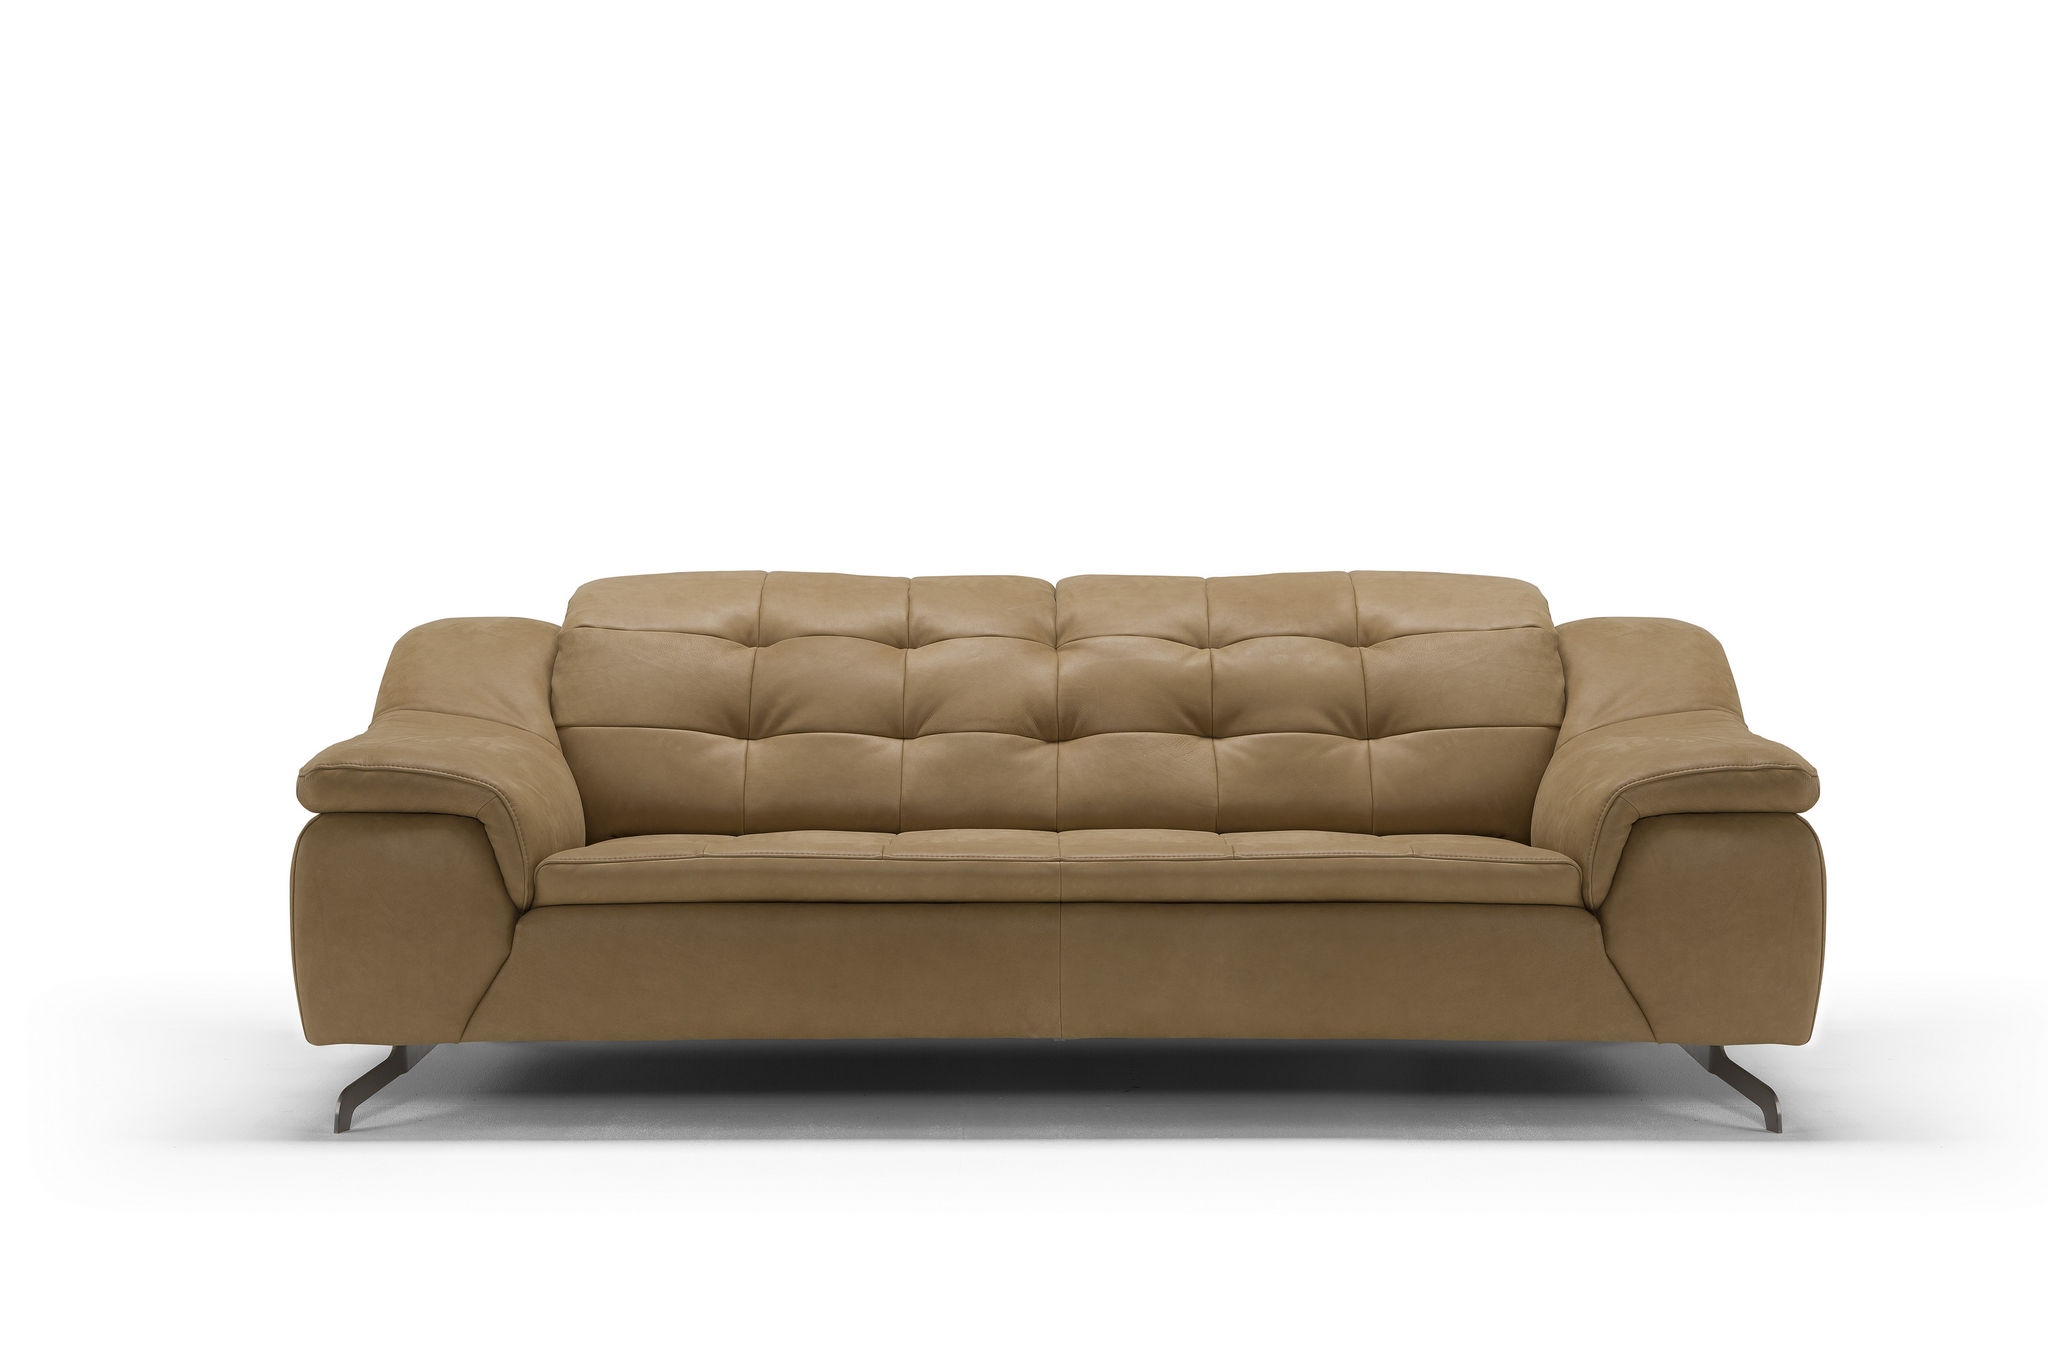 Bracci Cloud 2 sofa